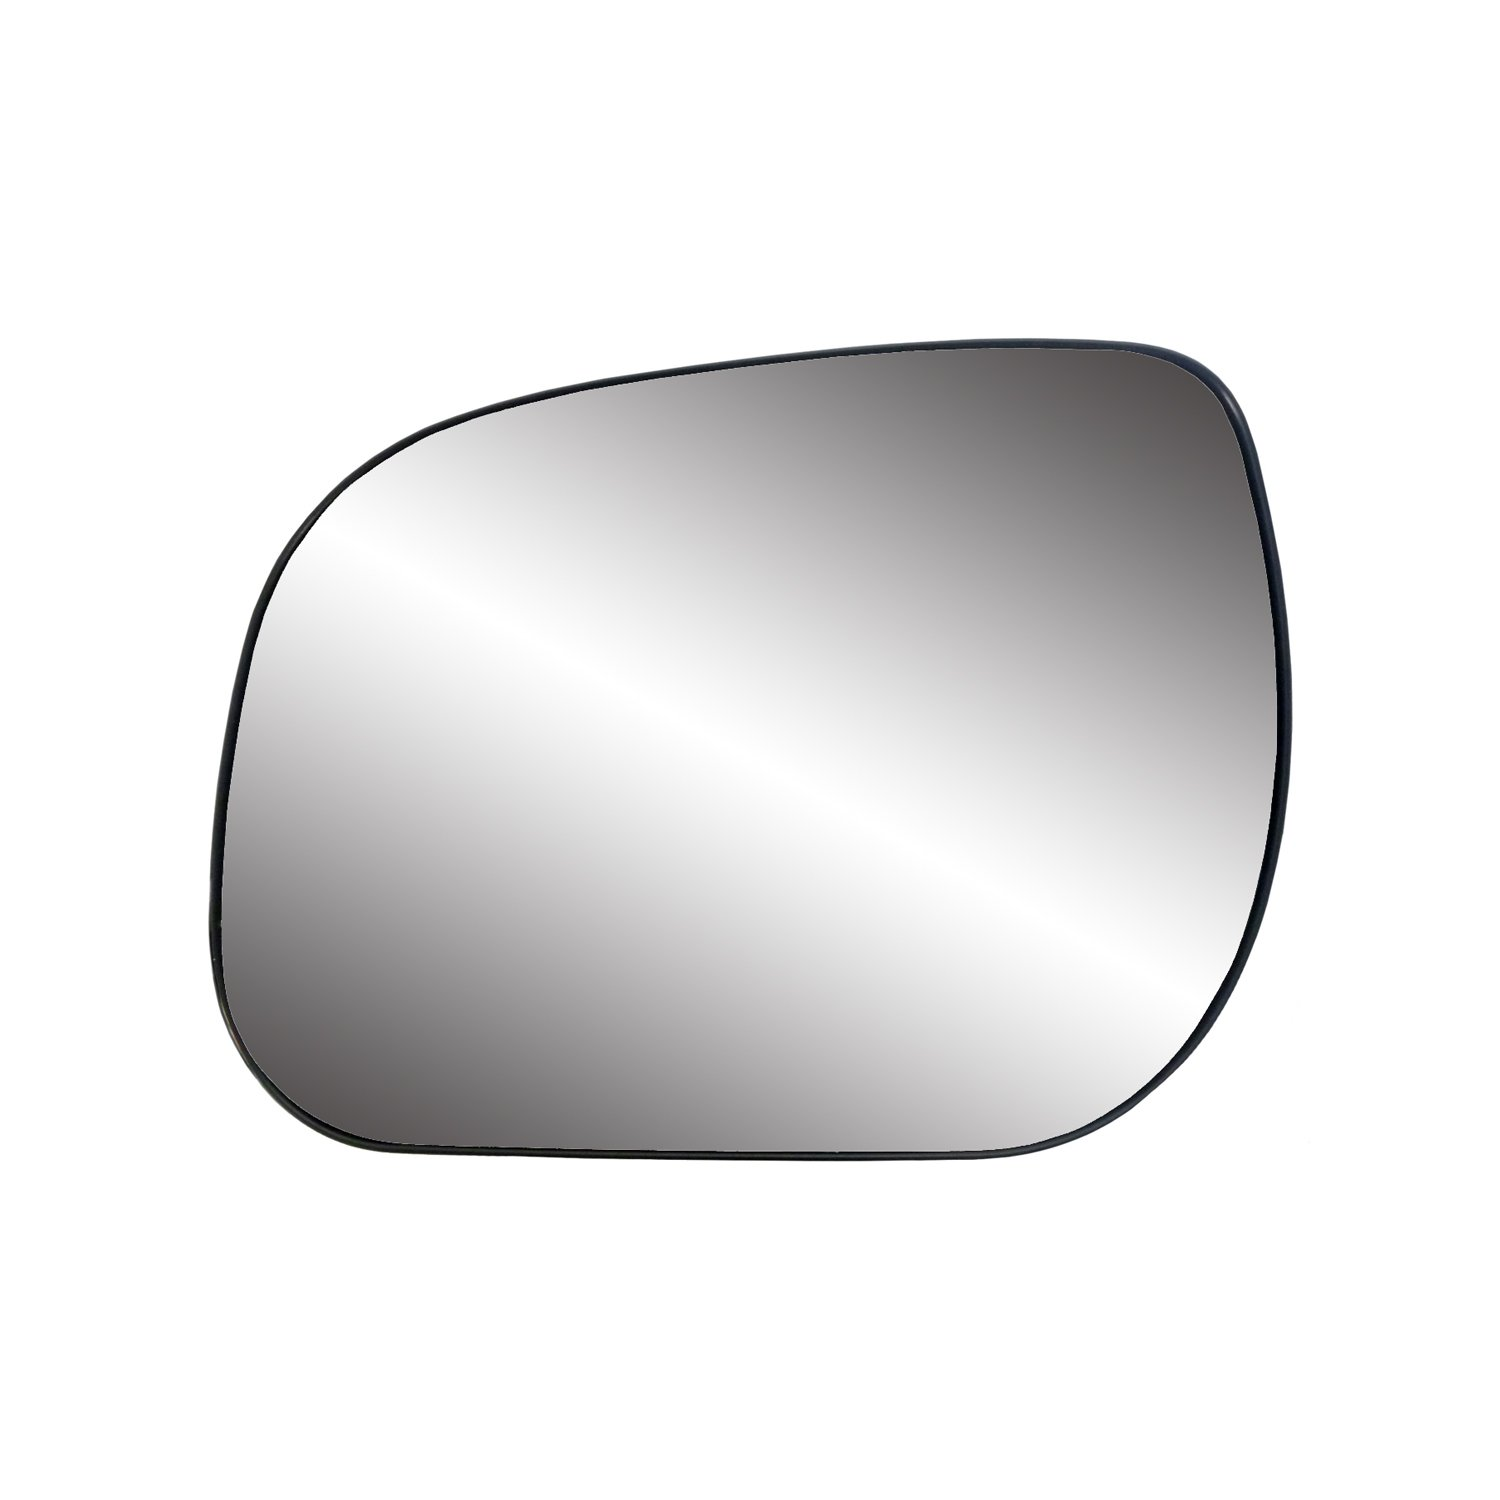 Fit System 80225 Toyota RAV4 Right Side Power Replacement Mirror Glass with Backing Plate